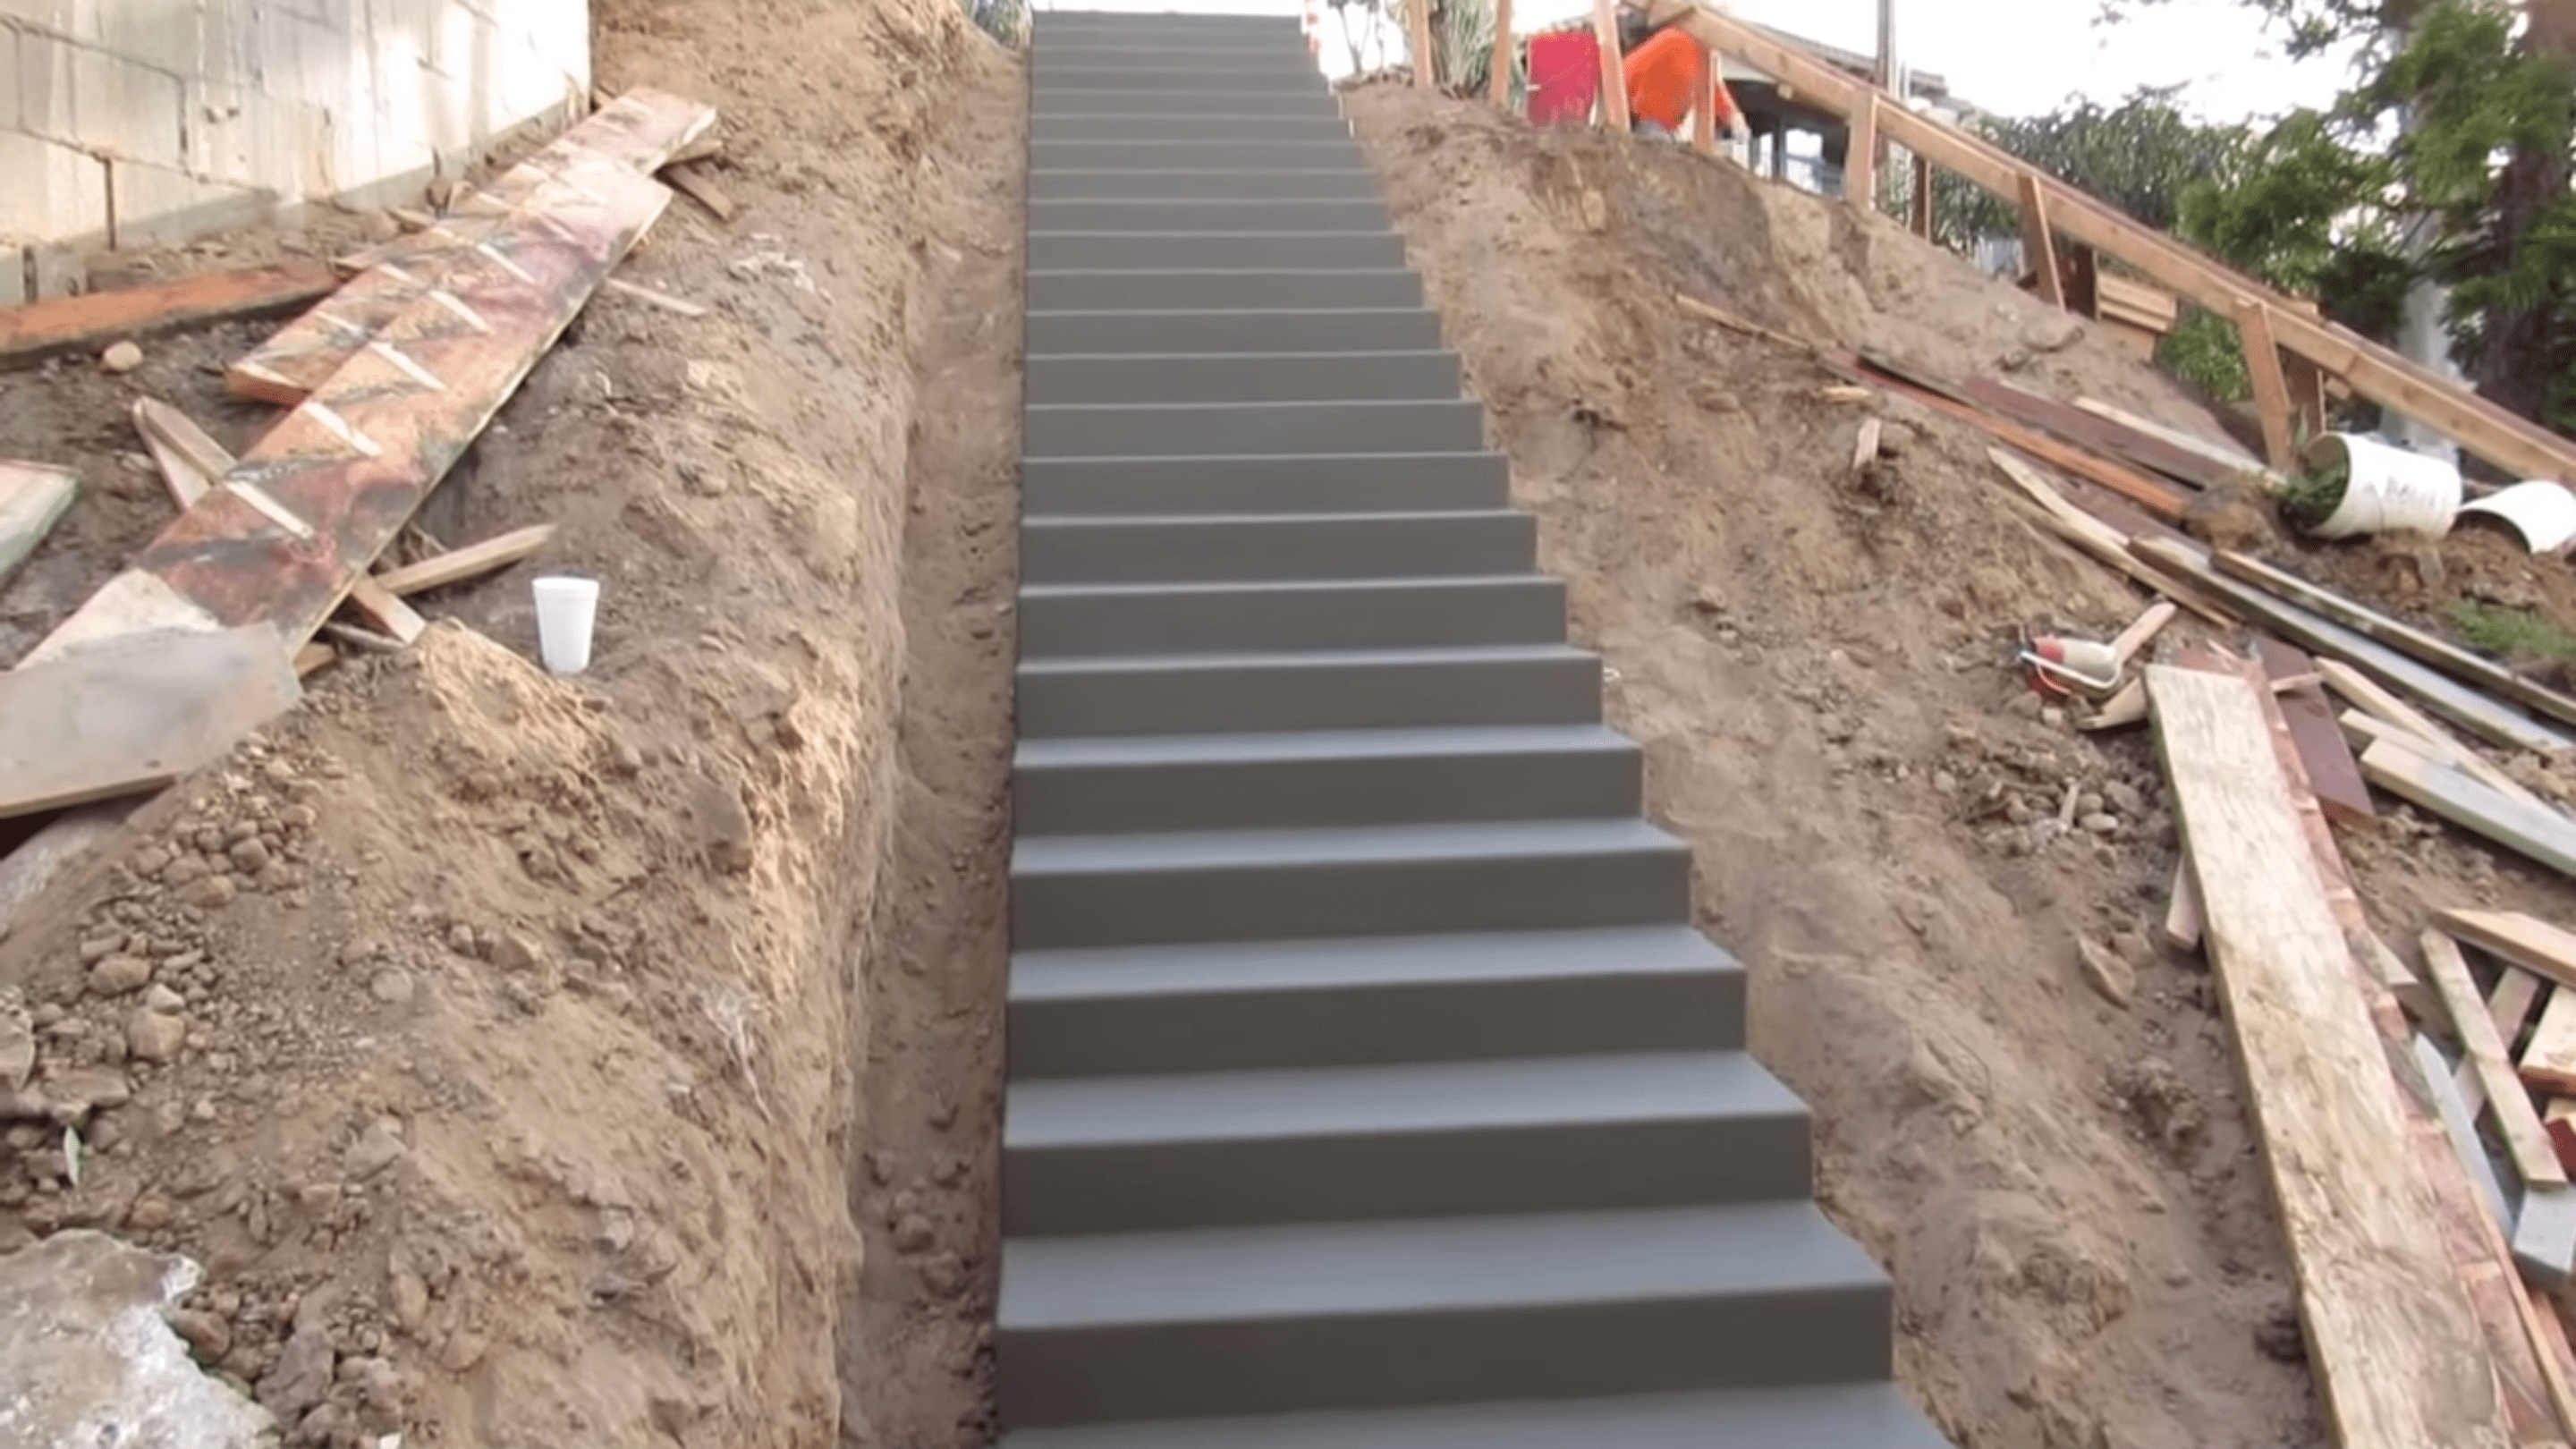 How To Build Stairs Watch Concrete Stairway Construction Video | Building A Handrail For Concrete Stairs | Steel Handrail | Brick | Deck Railing | Outdoor Stair | Precast Concrete